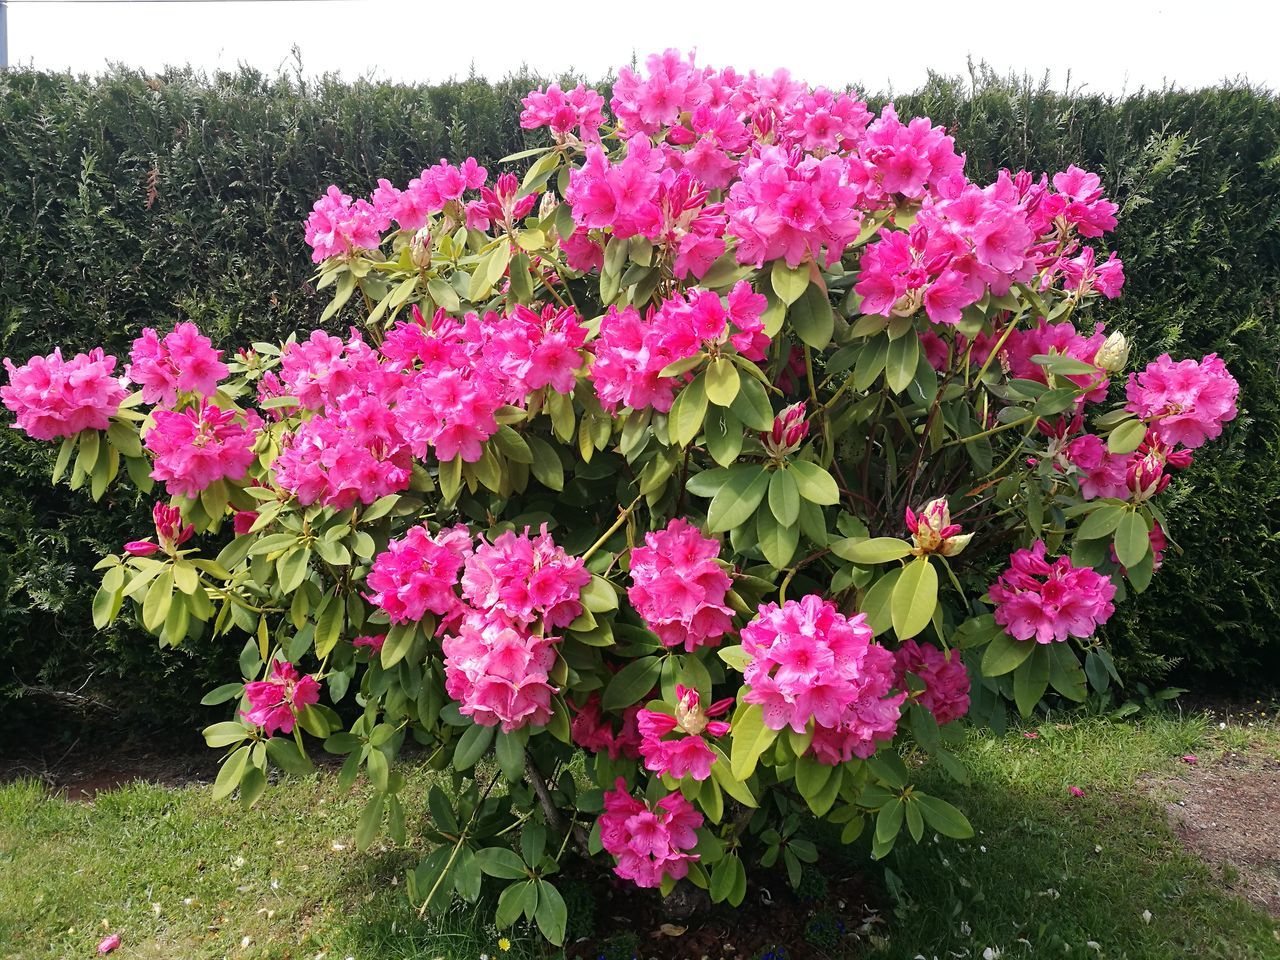 Flower Pink Color Nature Growth Plant Beauty In Nature Fragility Outdoors Freshness Day No People Blooming Flower Head Close-up rodho